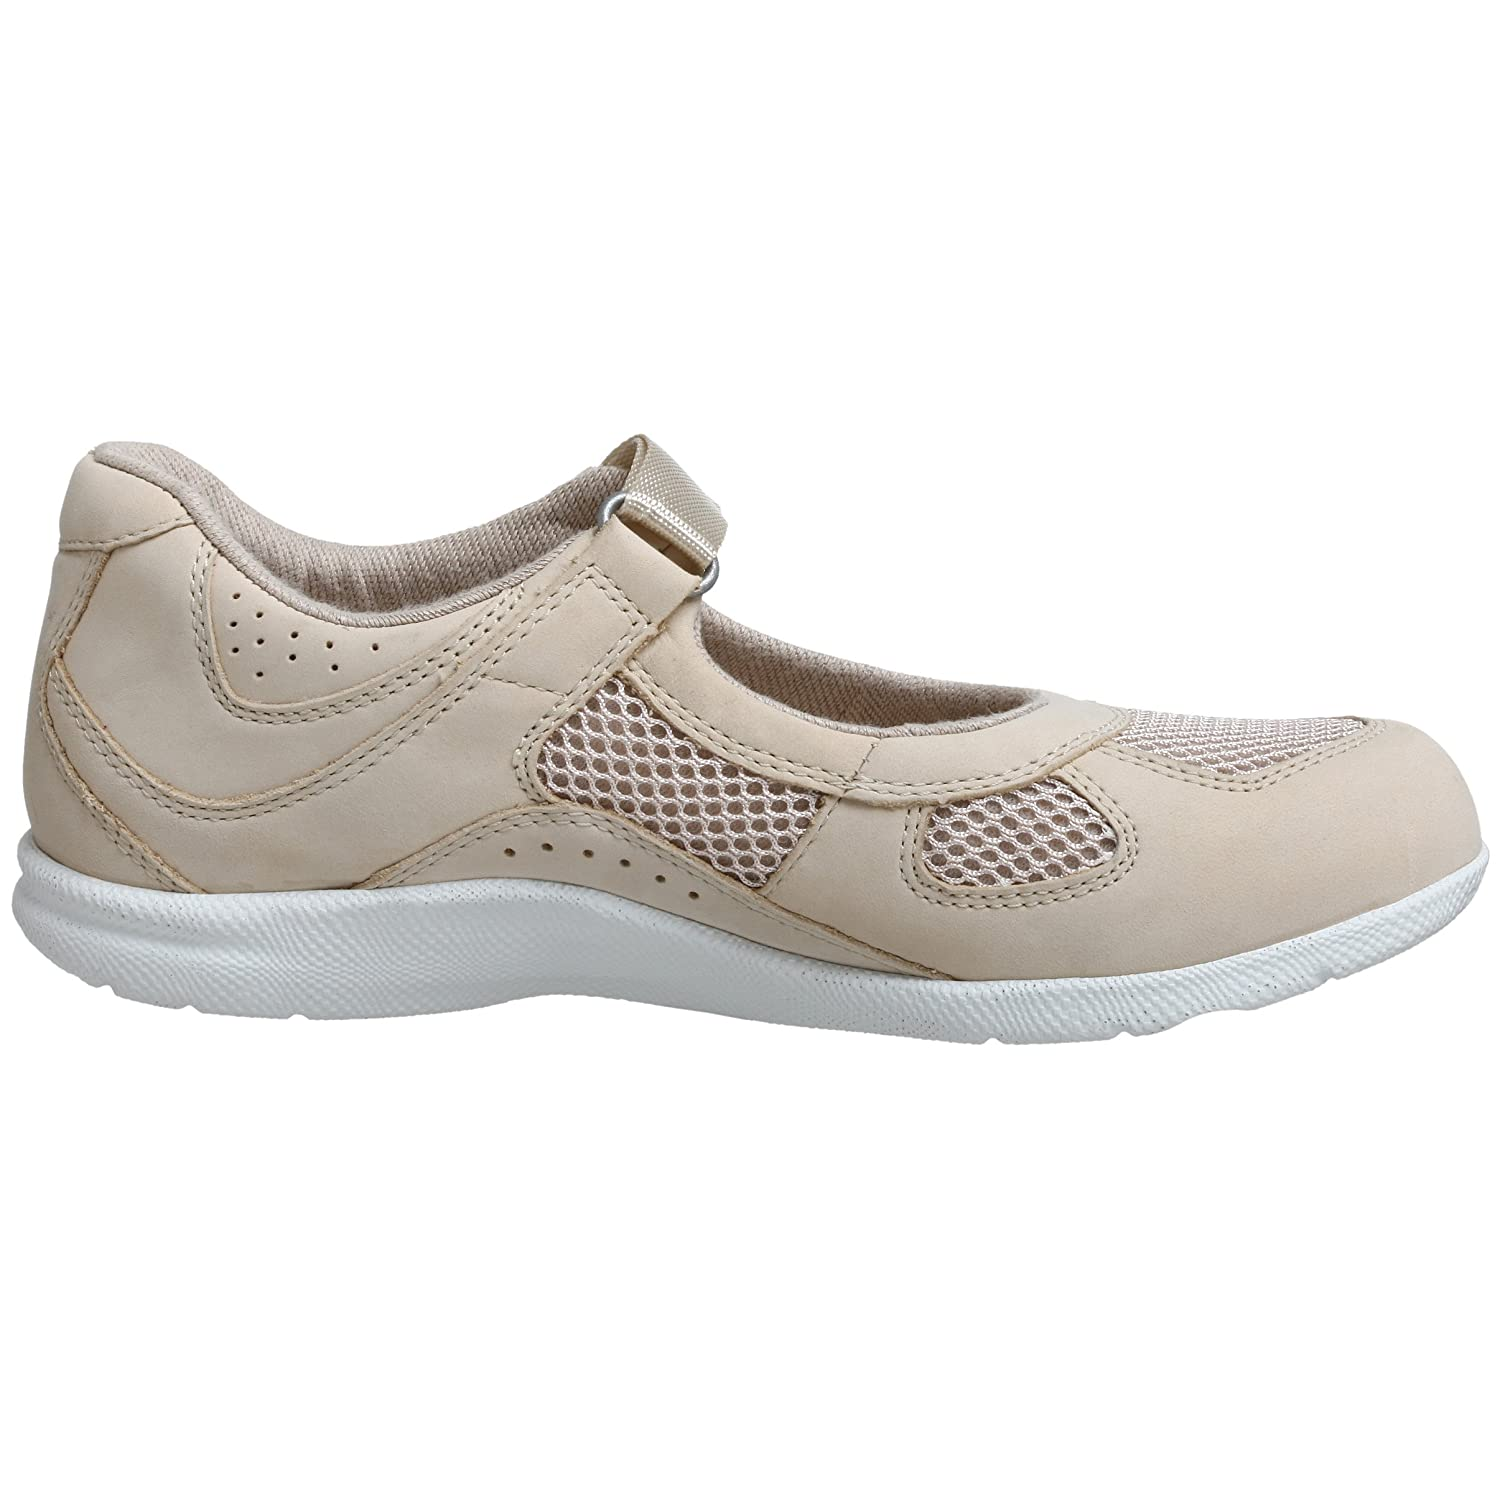 Drew Shoe B0018ATGBK Women's Delite Mary Jane B0018ATGBK Shoe 8 XW US|Bone Combo 55f6b4